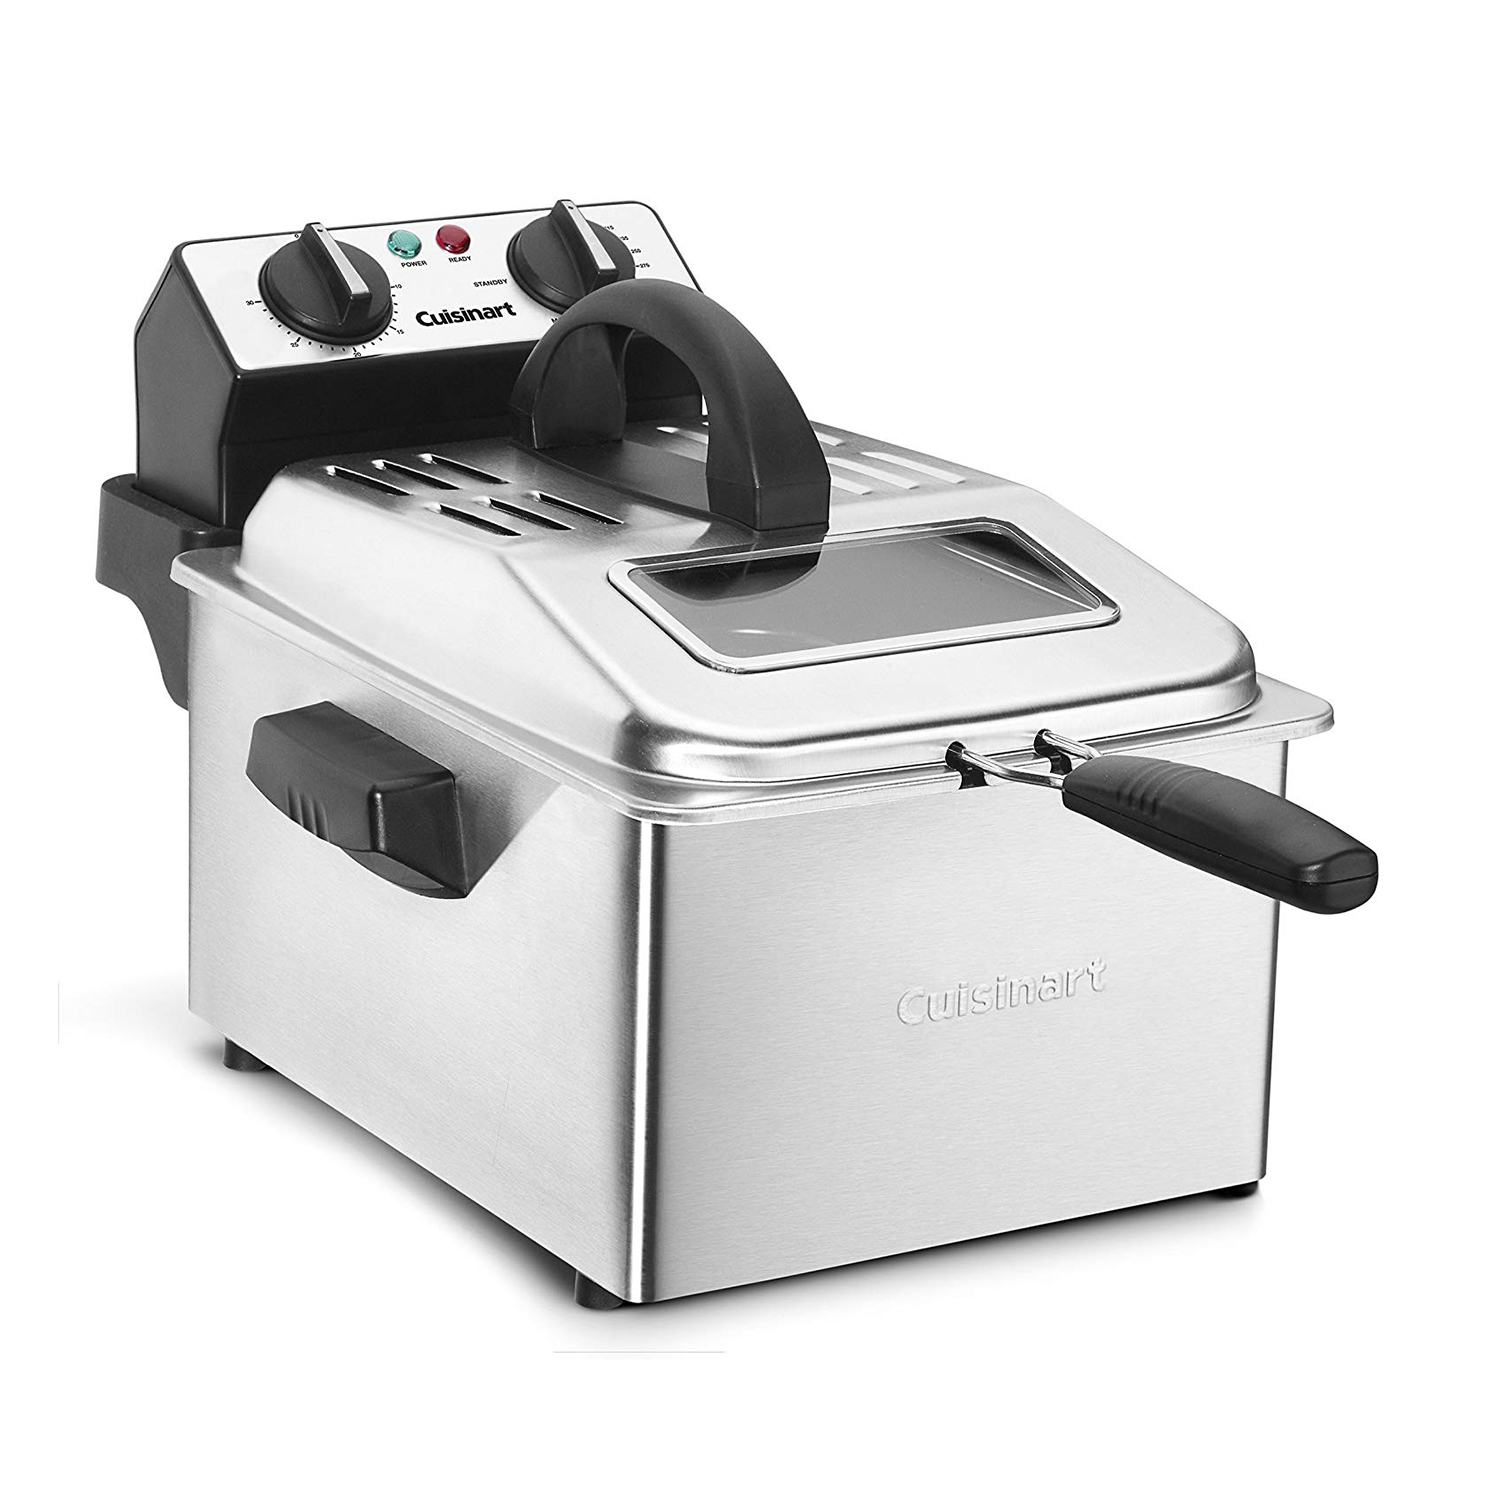 Cuisinart CDF-200 Deep Fryer, 4 Quart